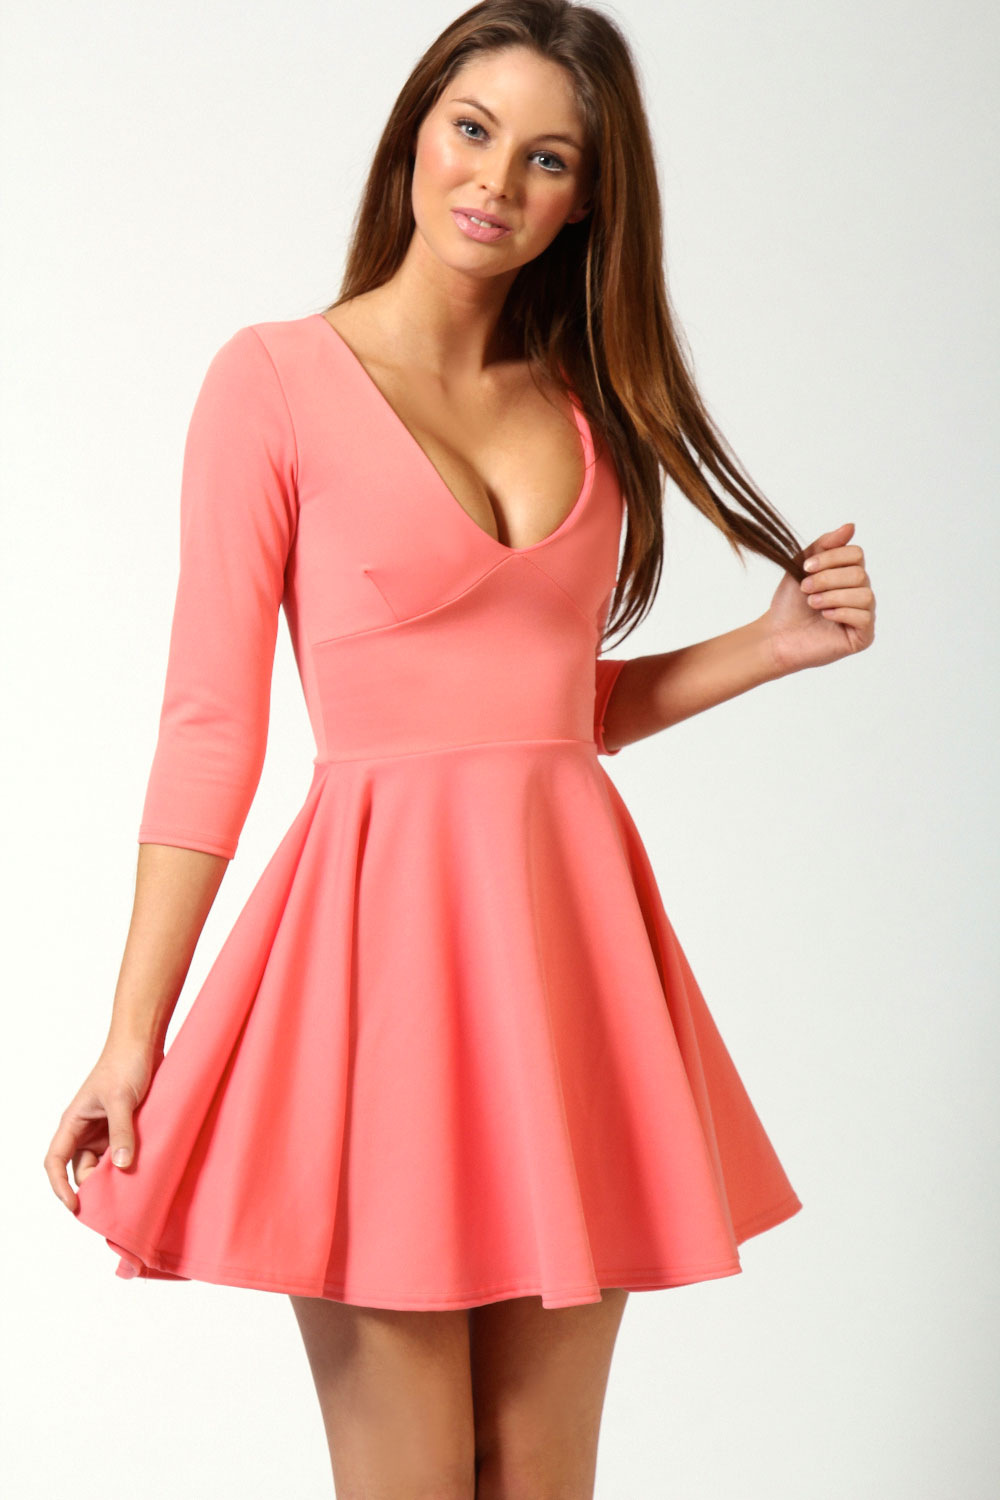 Boohoo Sacha Long Sleeve V Neck Short Skater Dress | eBay